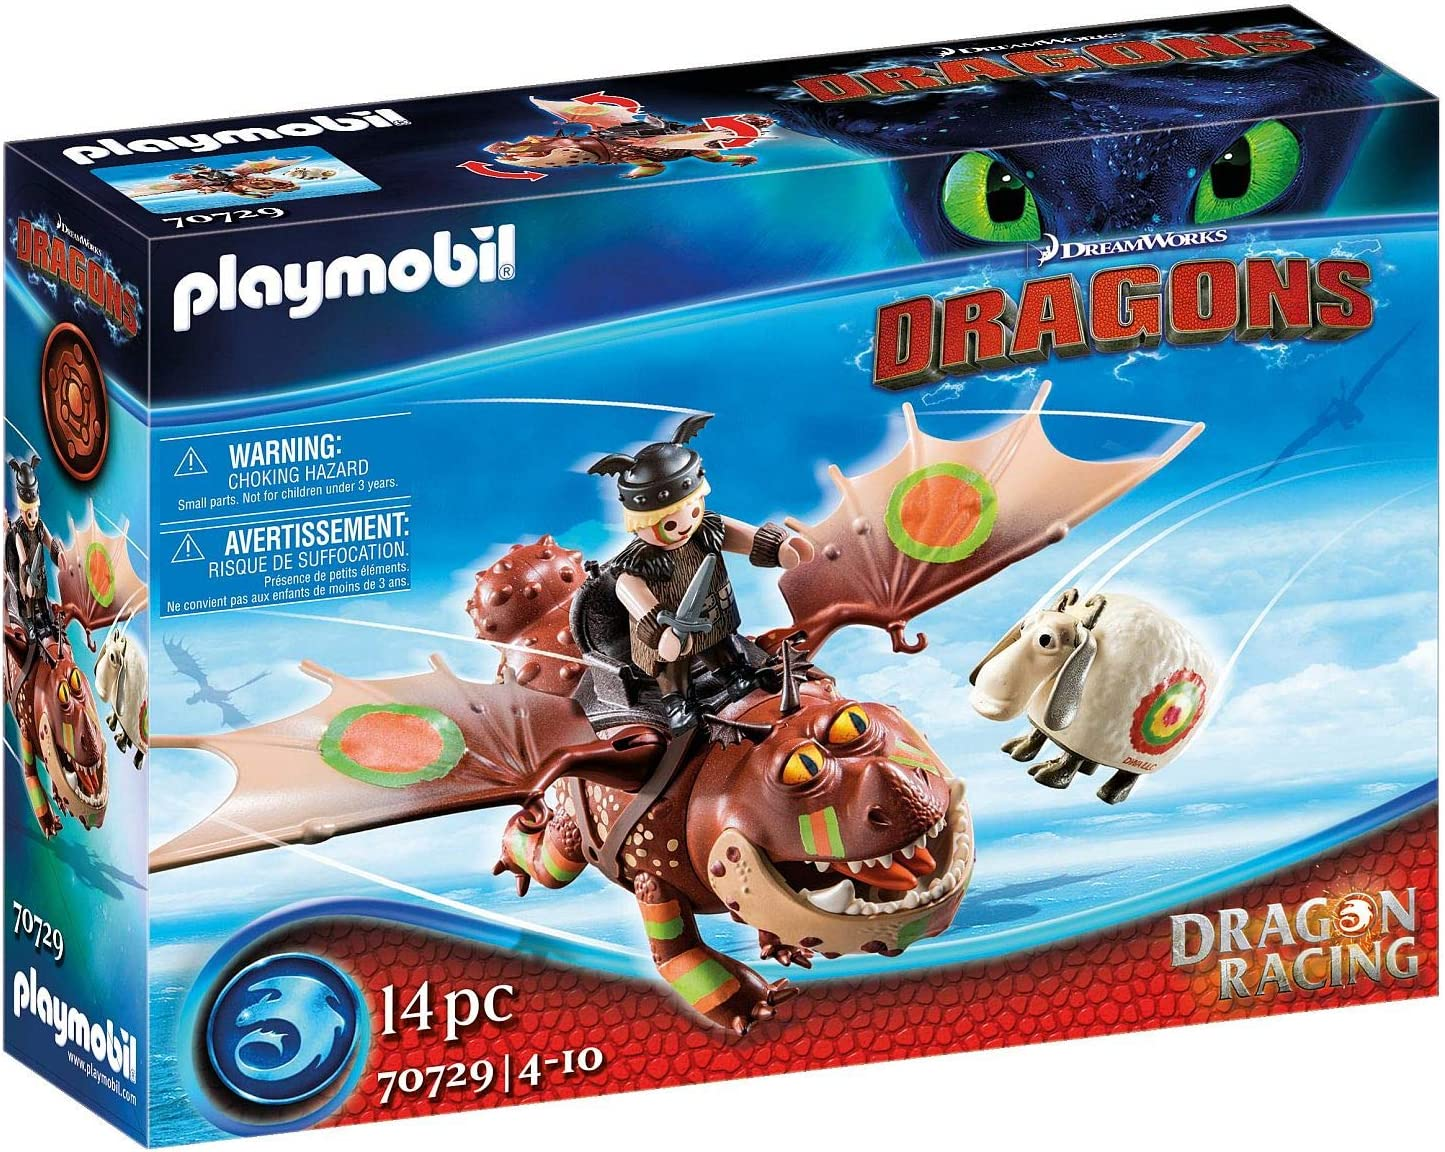 Playmobil Dragon Racing: Meatlug Fishlegs Super sale Large-scale sale period limited and